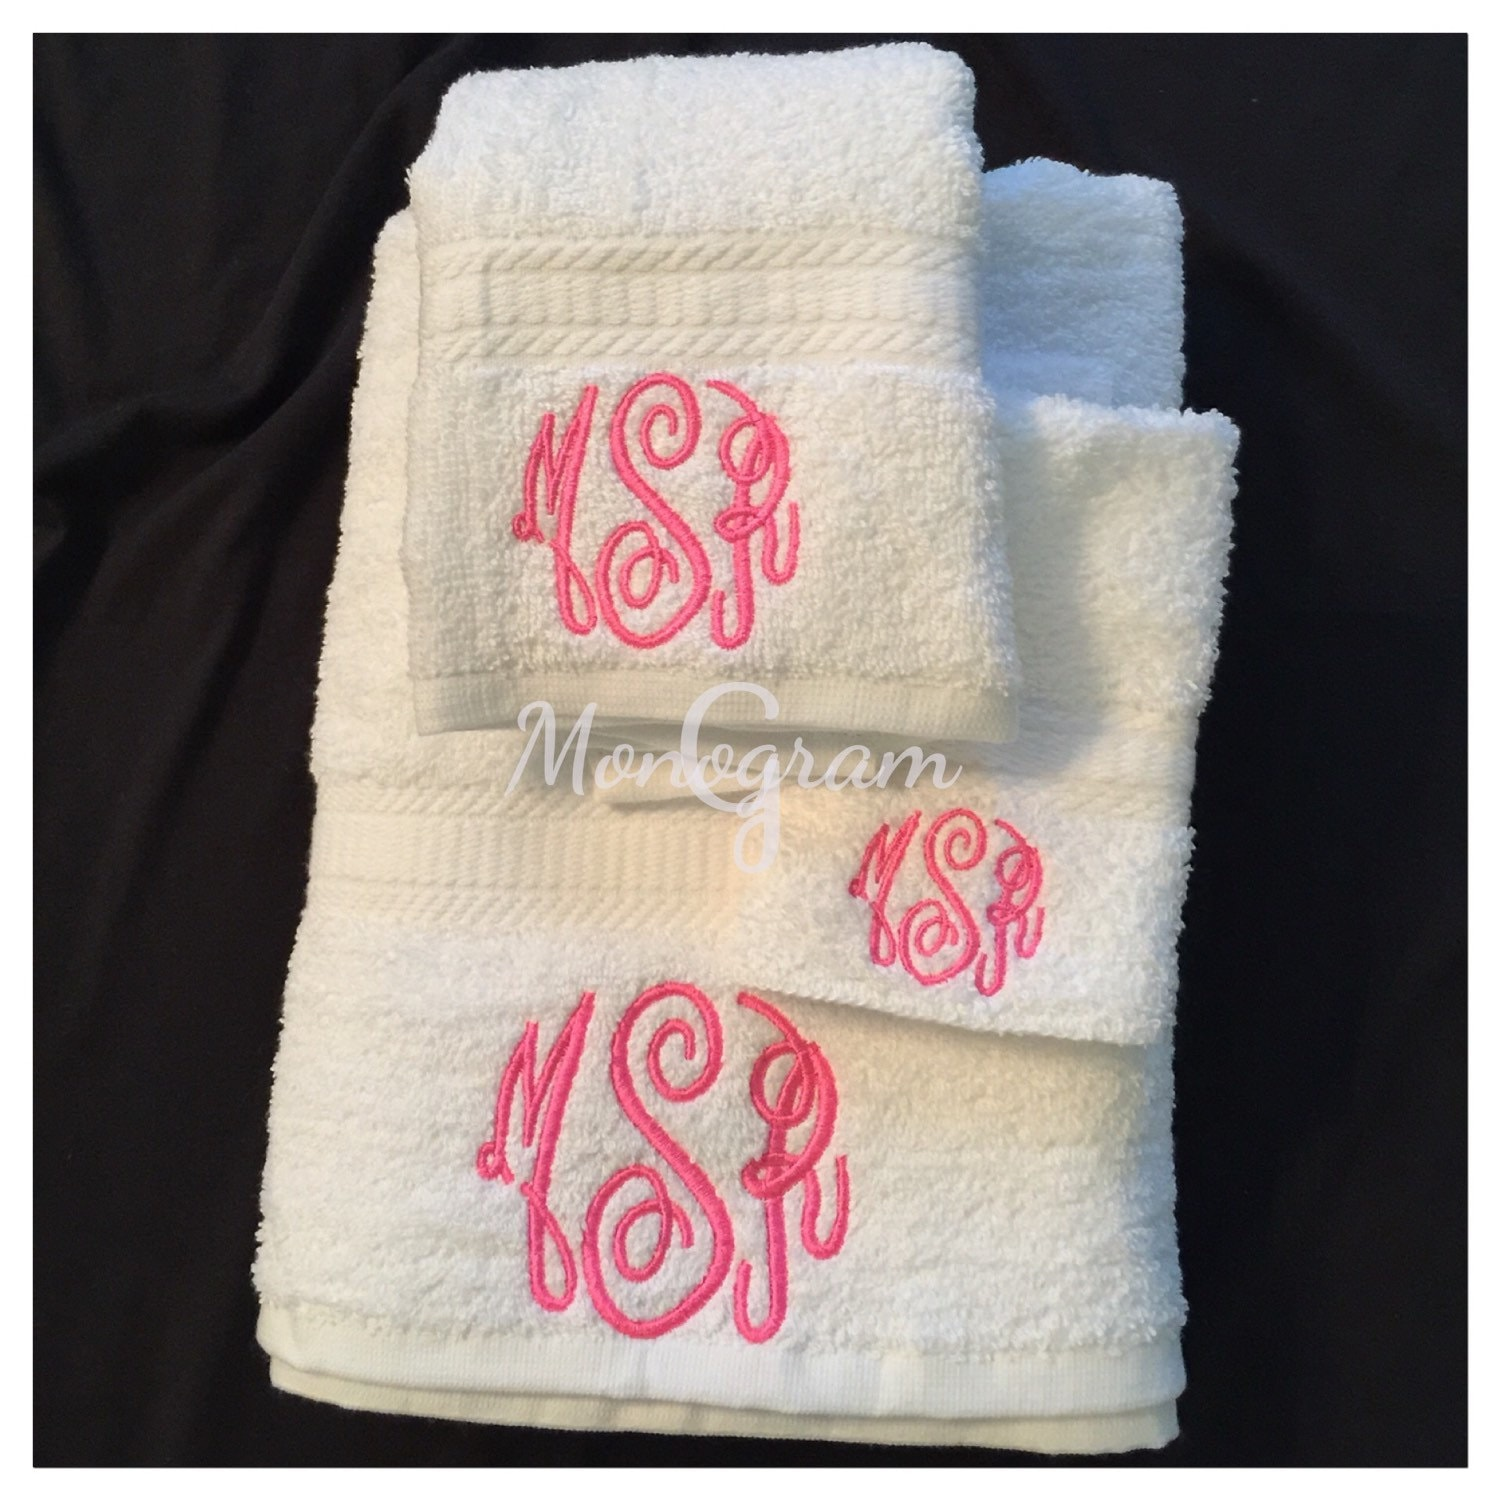 Monogrammed Towel Set/ Monogrammed Bath Towels/ Monogram